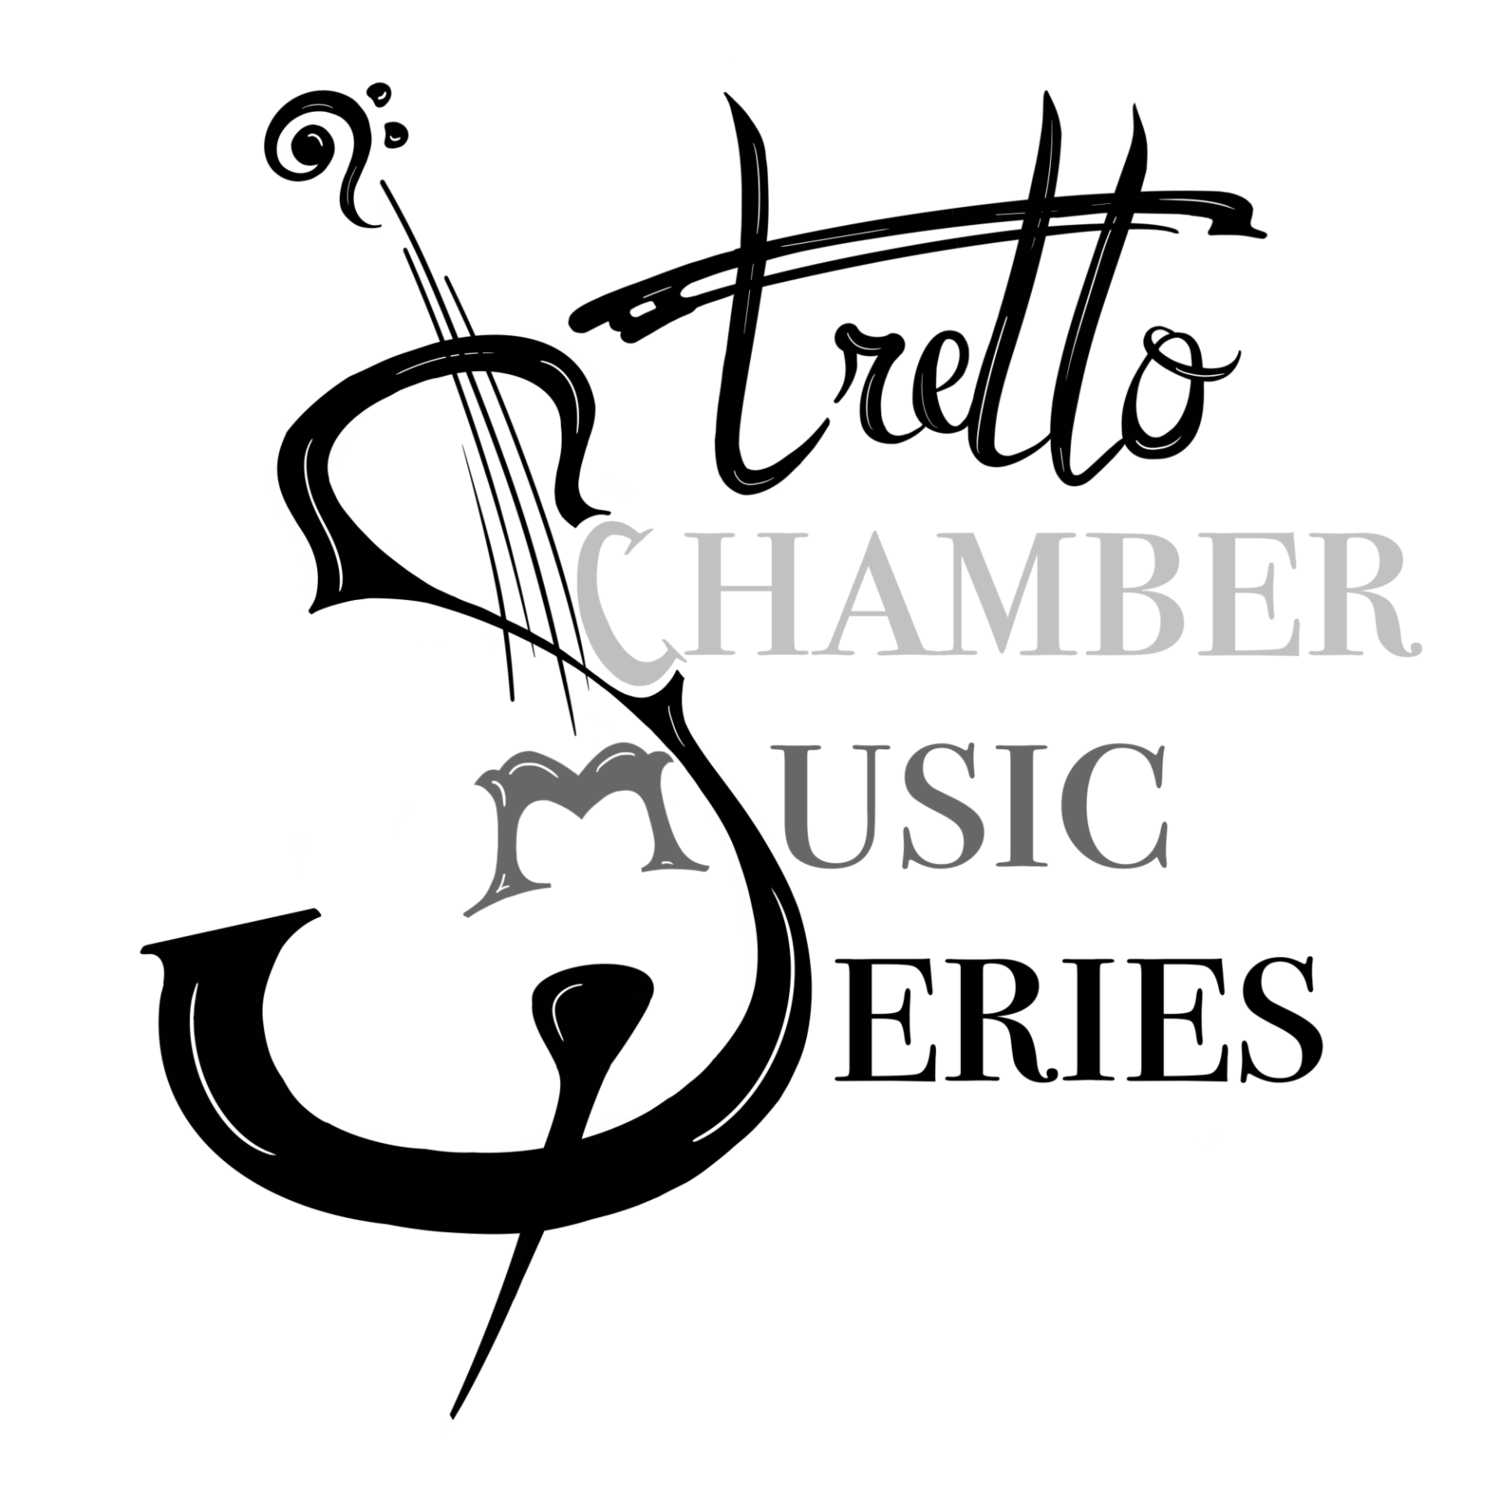 Stretto Chamber Music Series